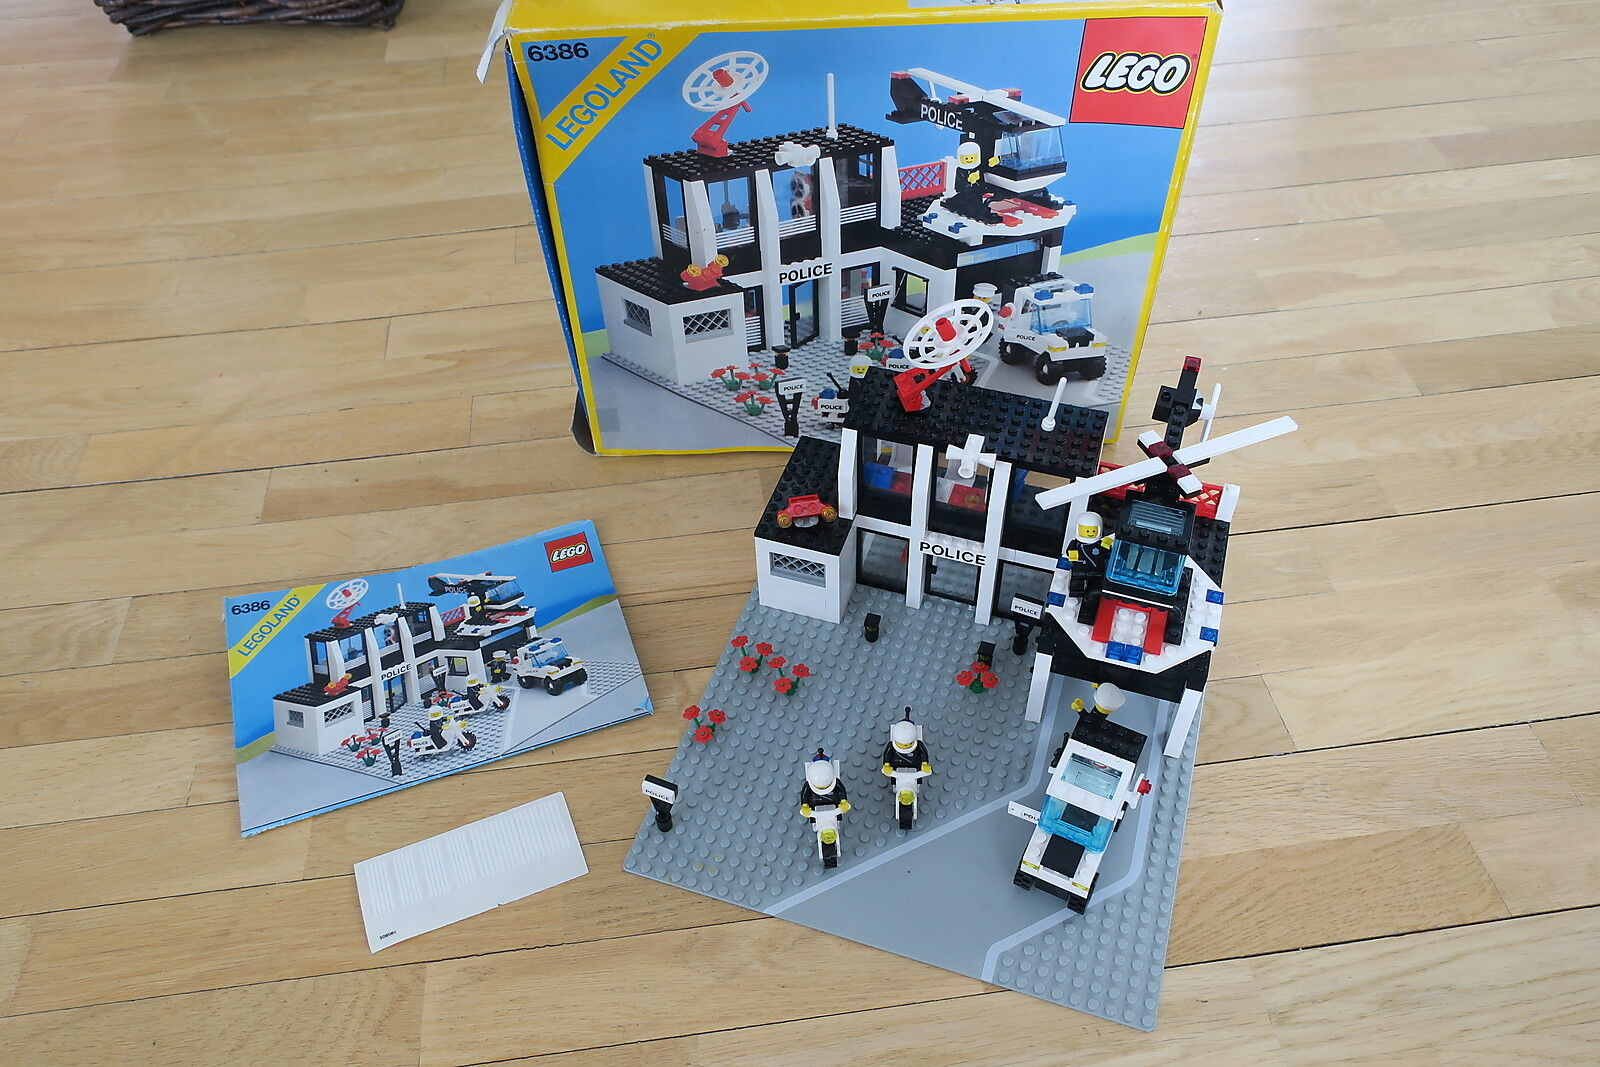 LEGO 6386  -  COMMISSARIAT POLICE   POLICE STATION